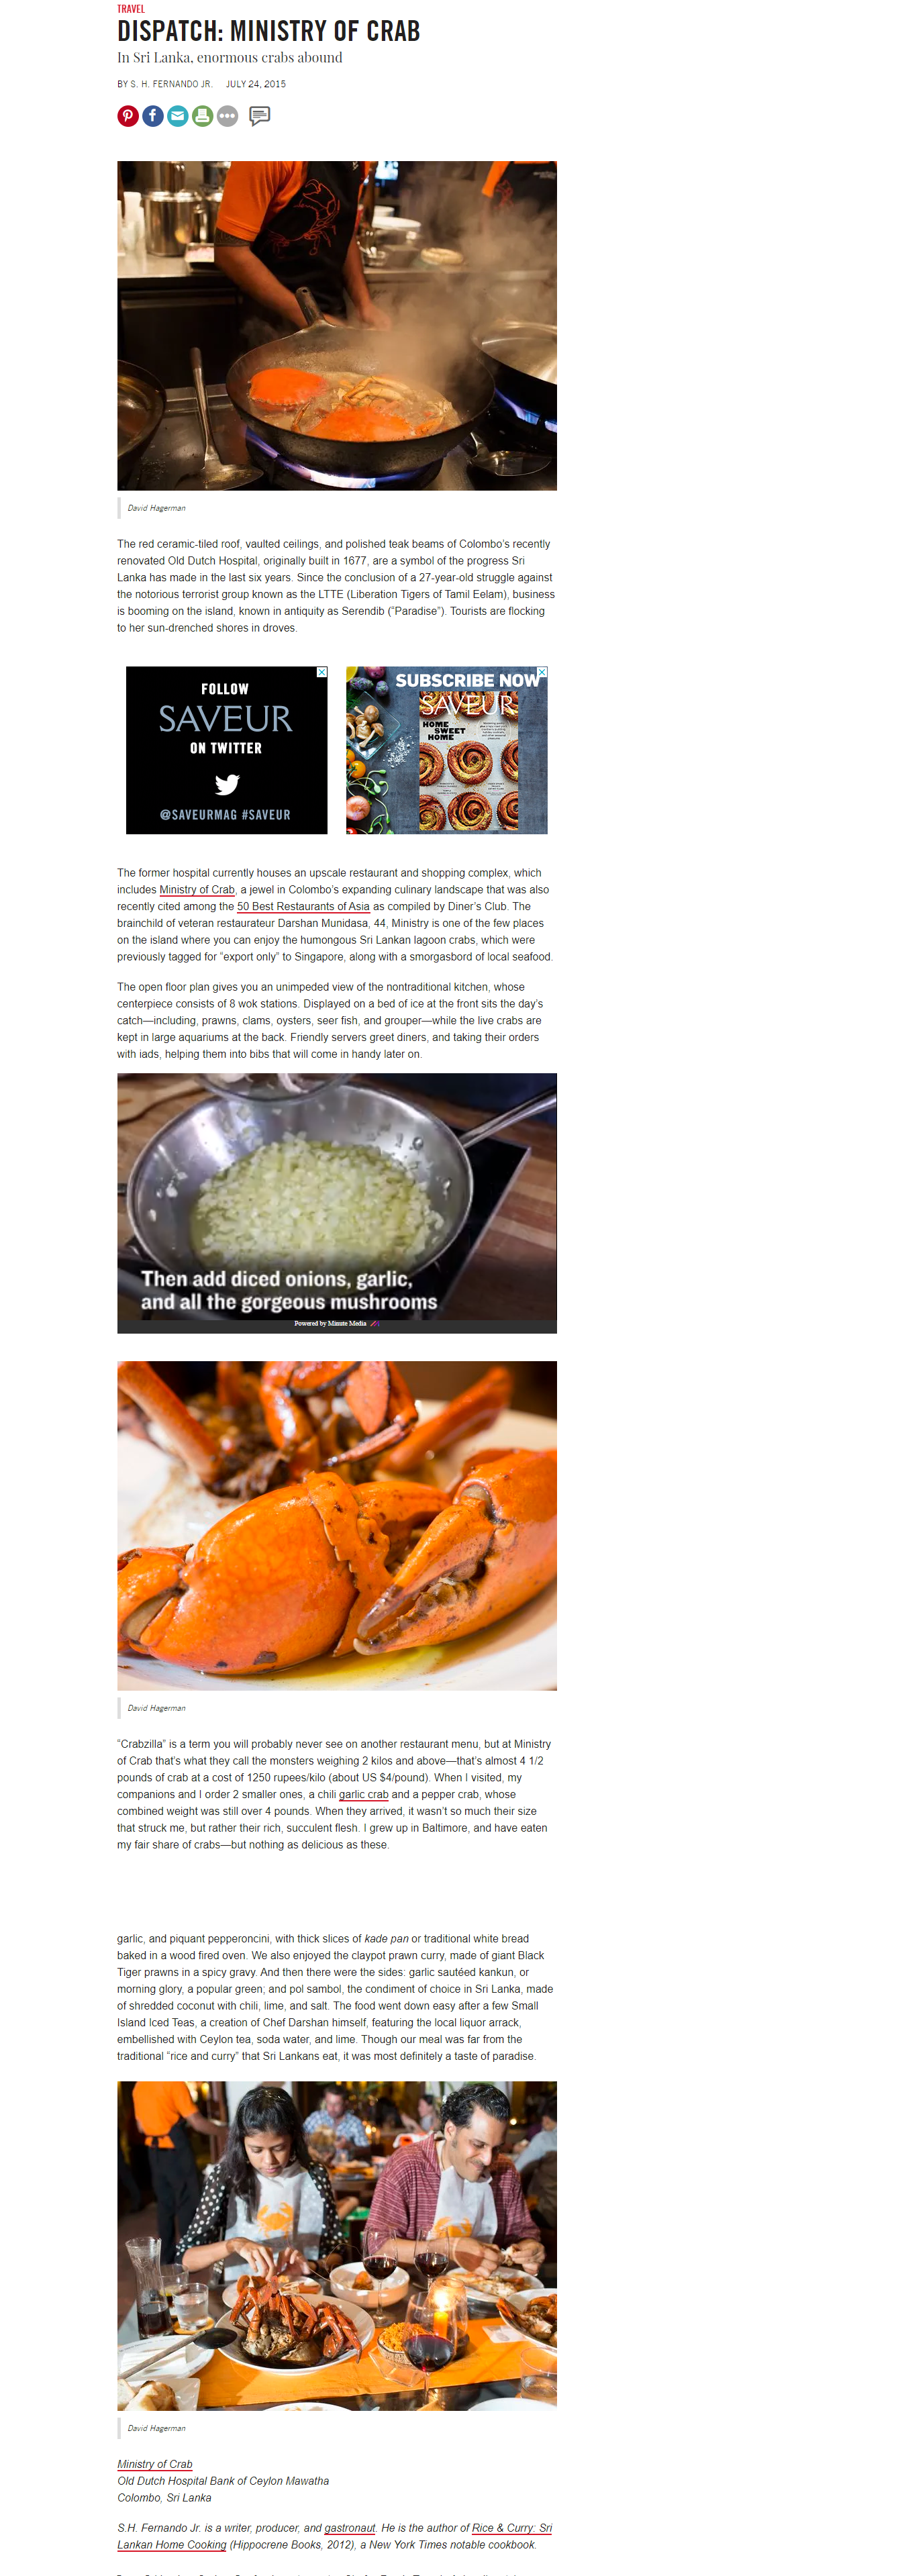 DISPATCH: MINISTRY OF CRAB